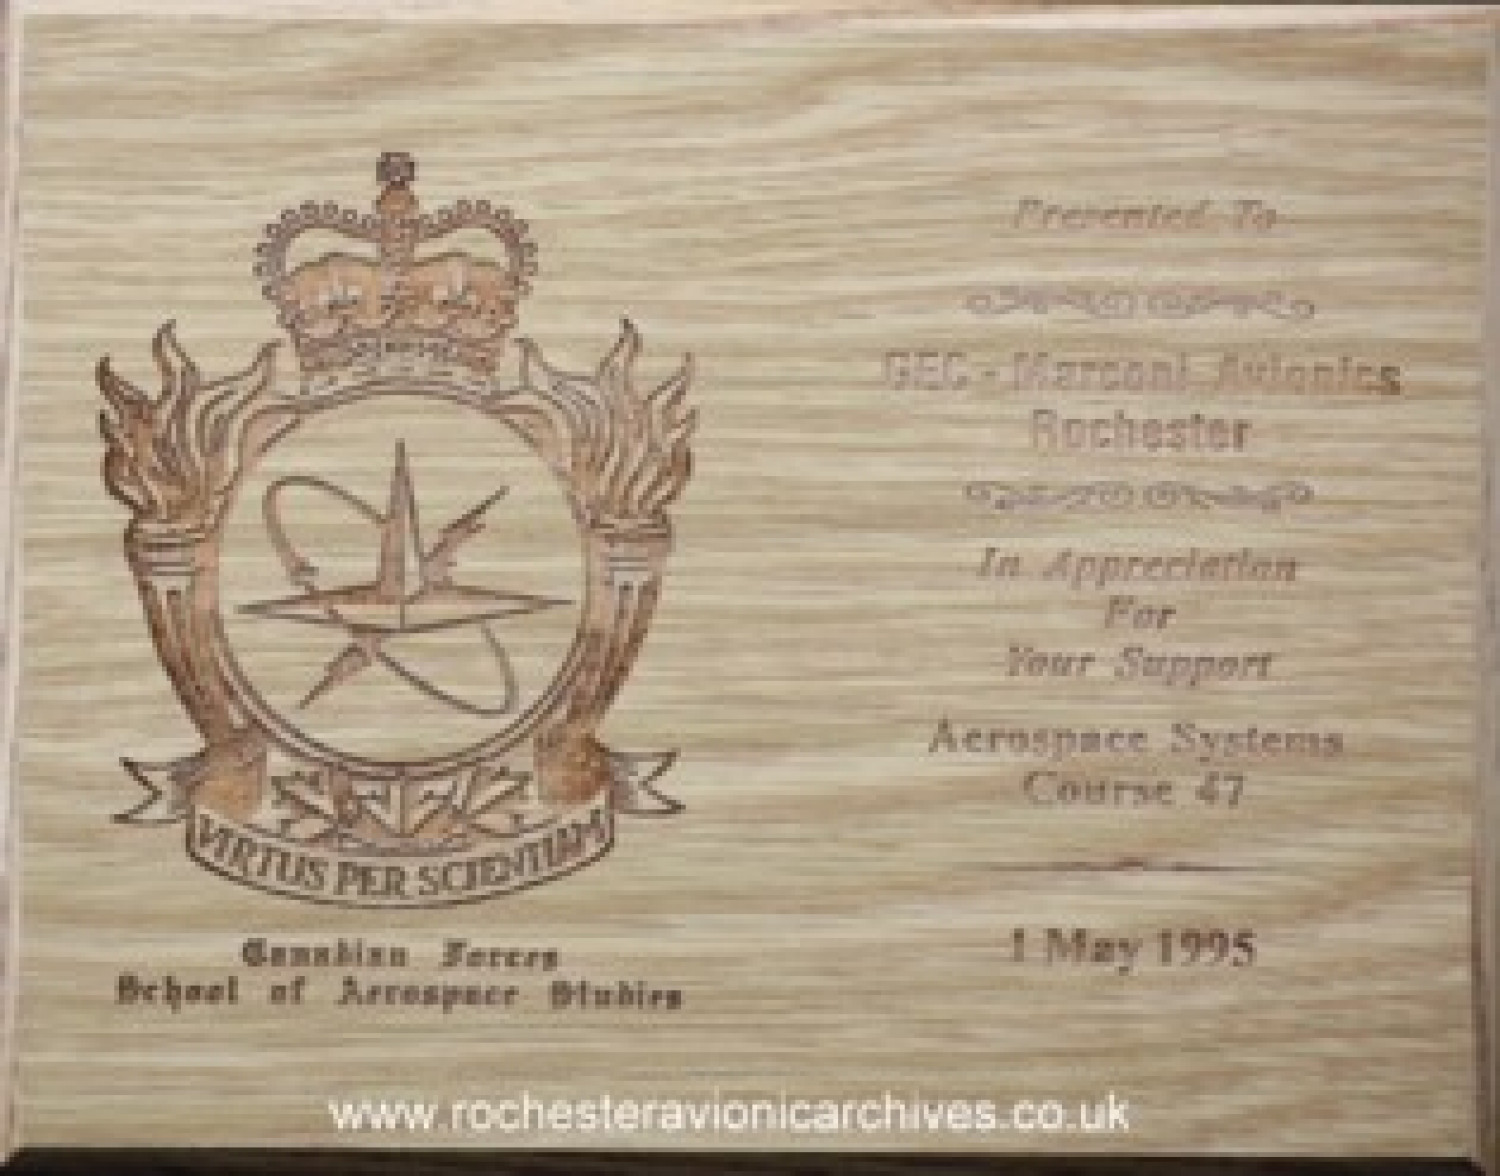 Aerospace Systems Course 1995 Award